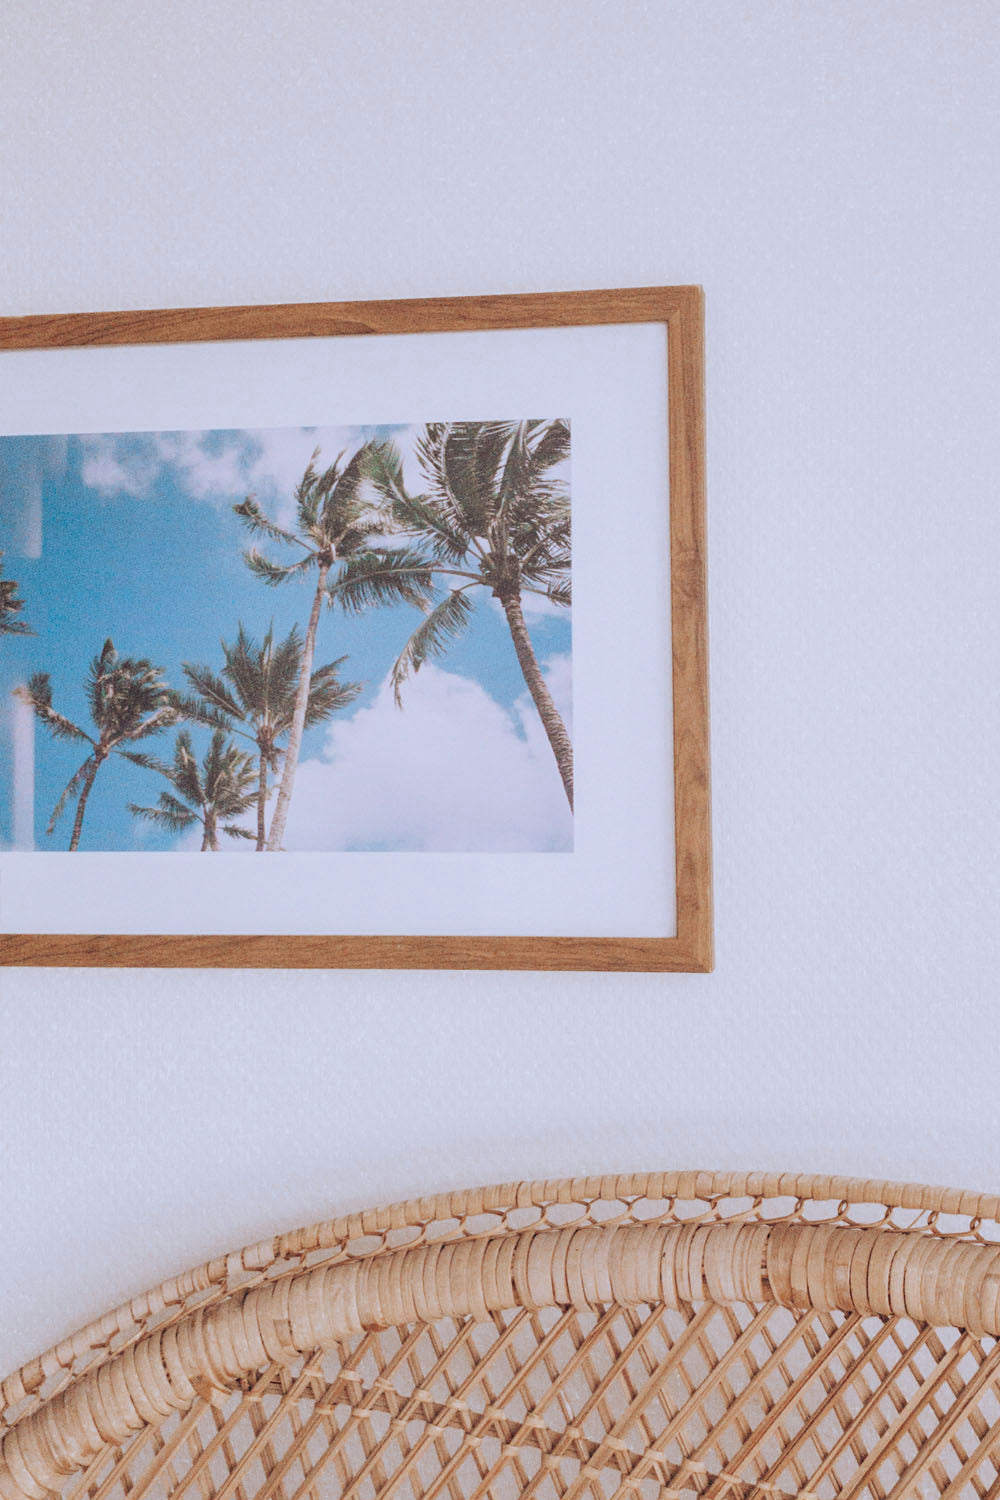 Photo Print: Palms Waving